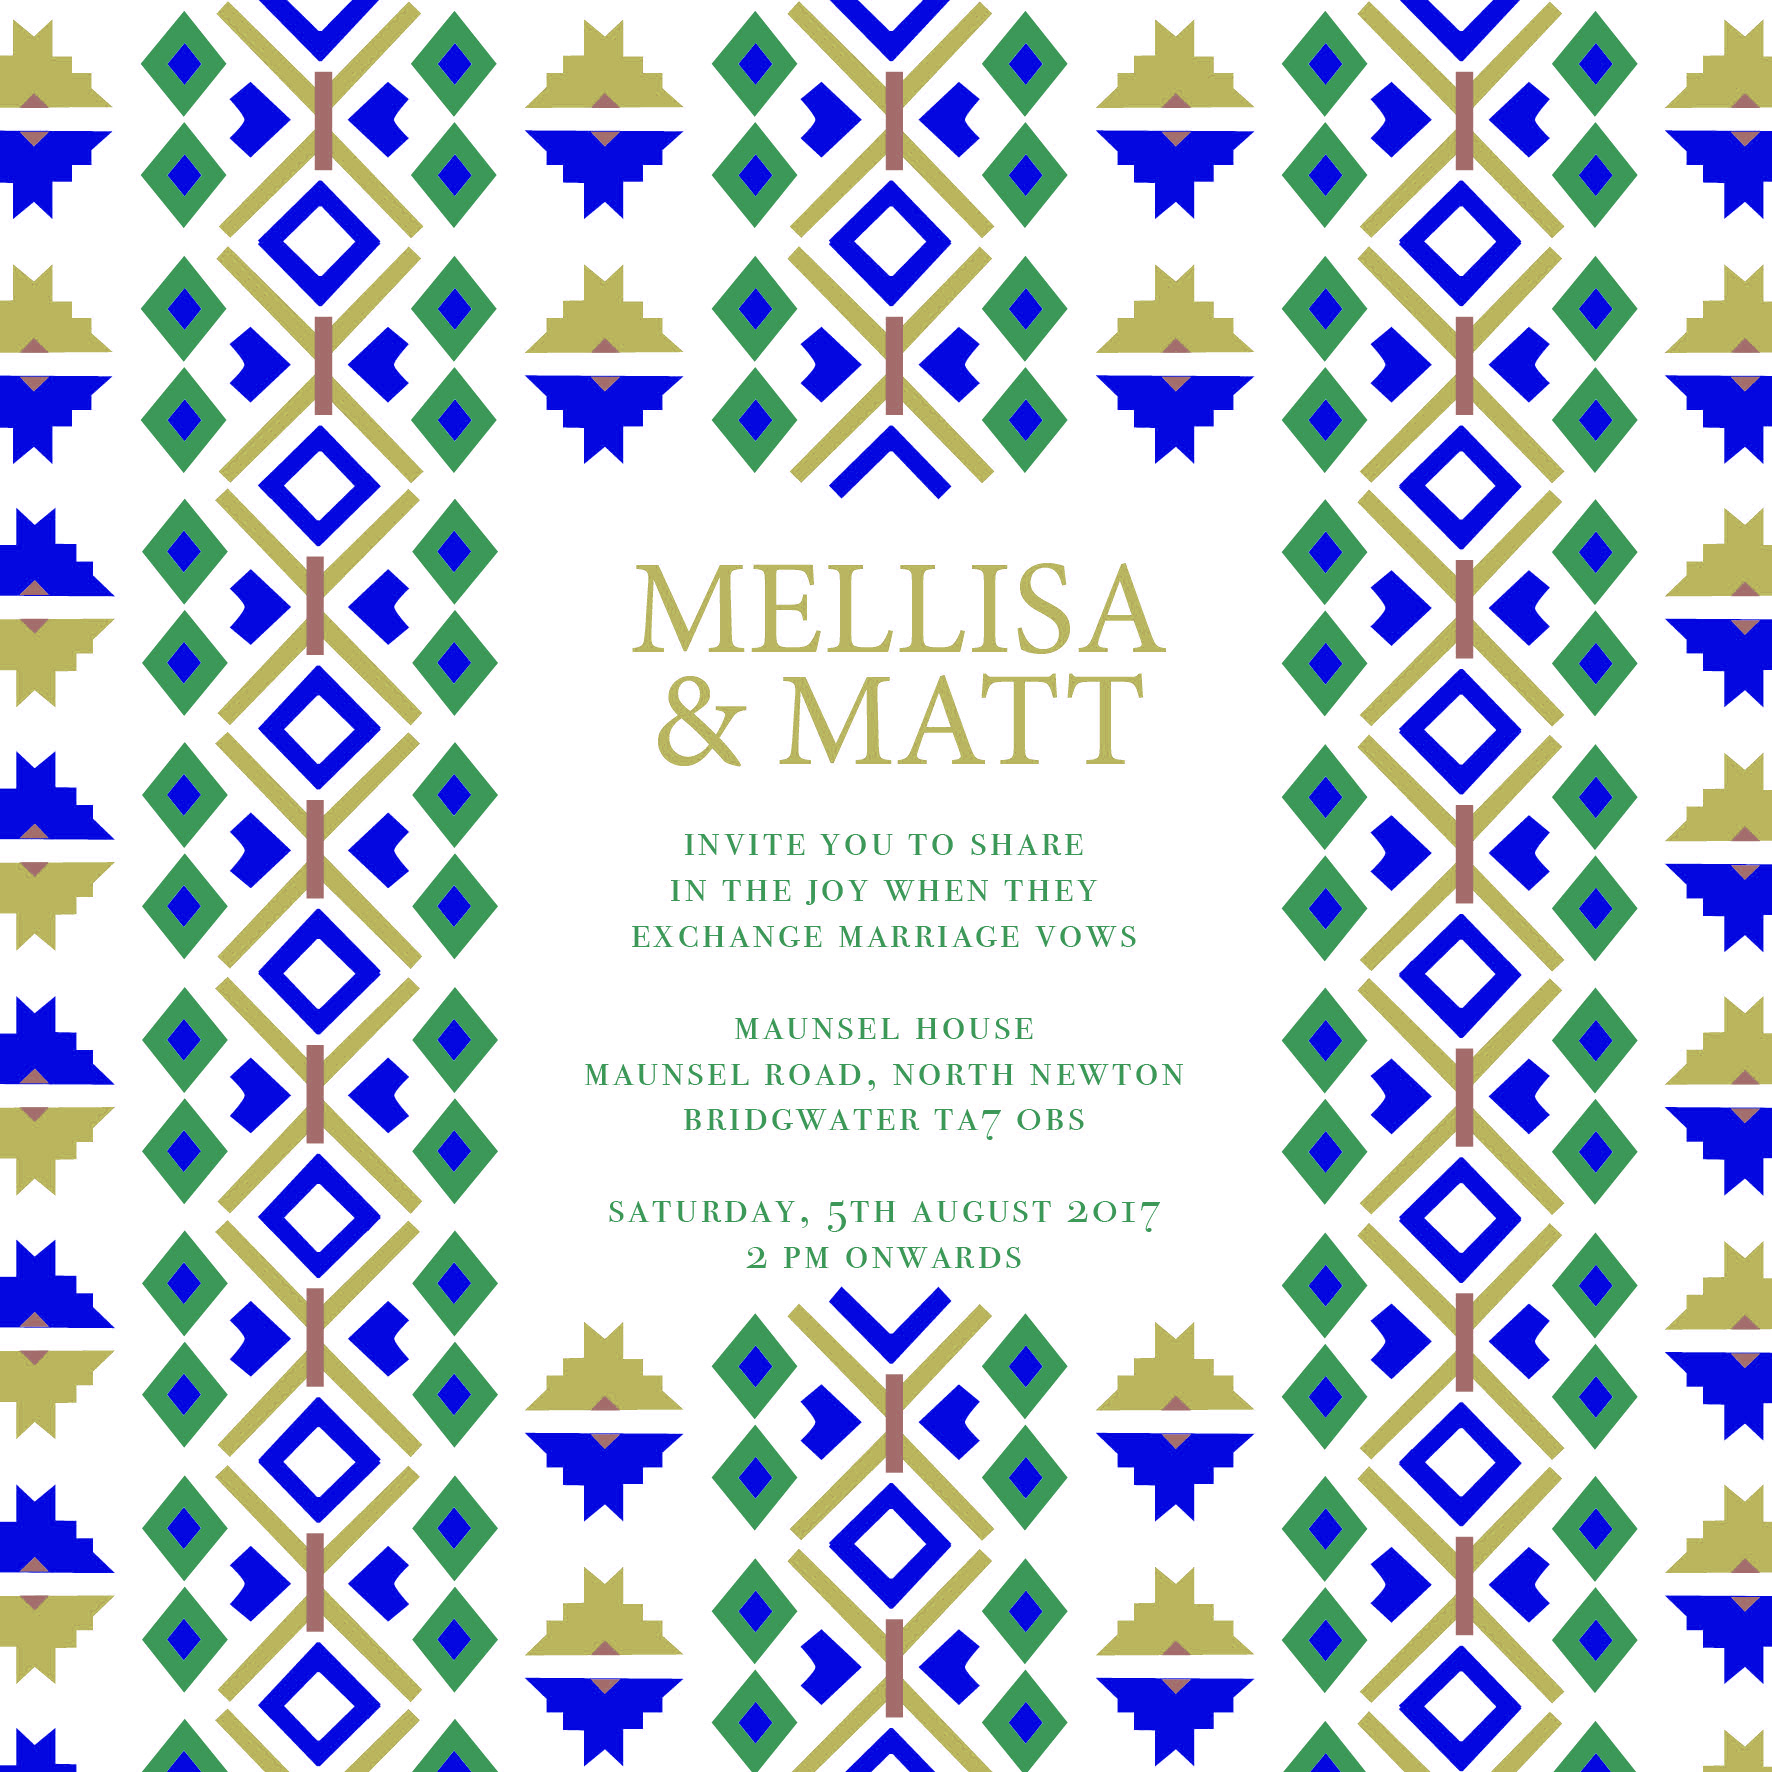 Blue and gold tribal wedding invitation_ananyacards.com